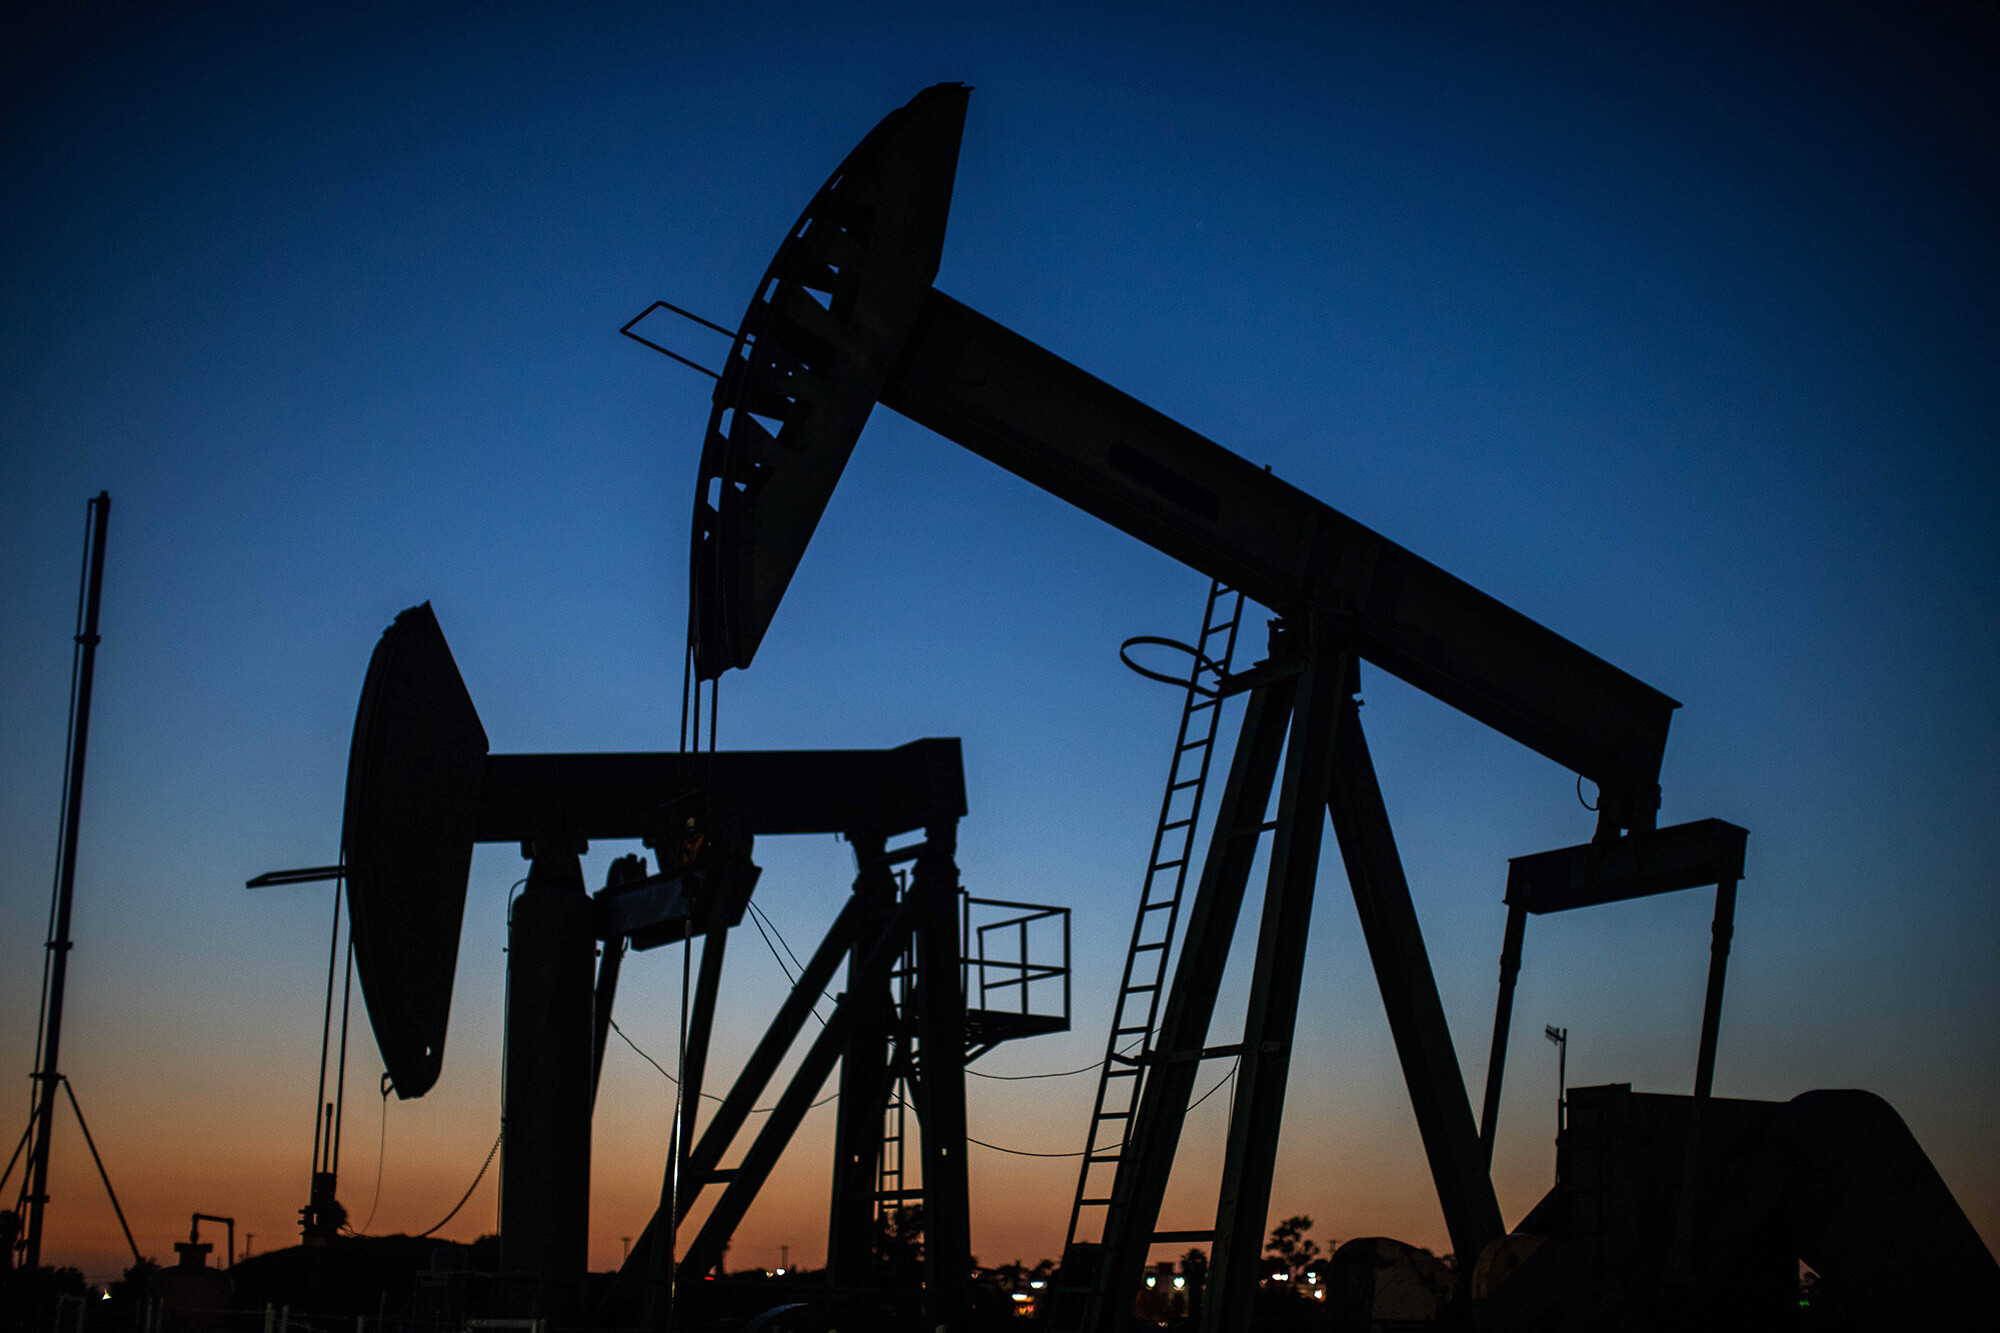 <i>Apu Gomes/AFP/Getty Images</i><br/>Pro-fossil fuel Facebook ads were viewed 431 million times — in one year. This image shows oil pumpjacks at Willow Springs Park in Long Beach